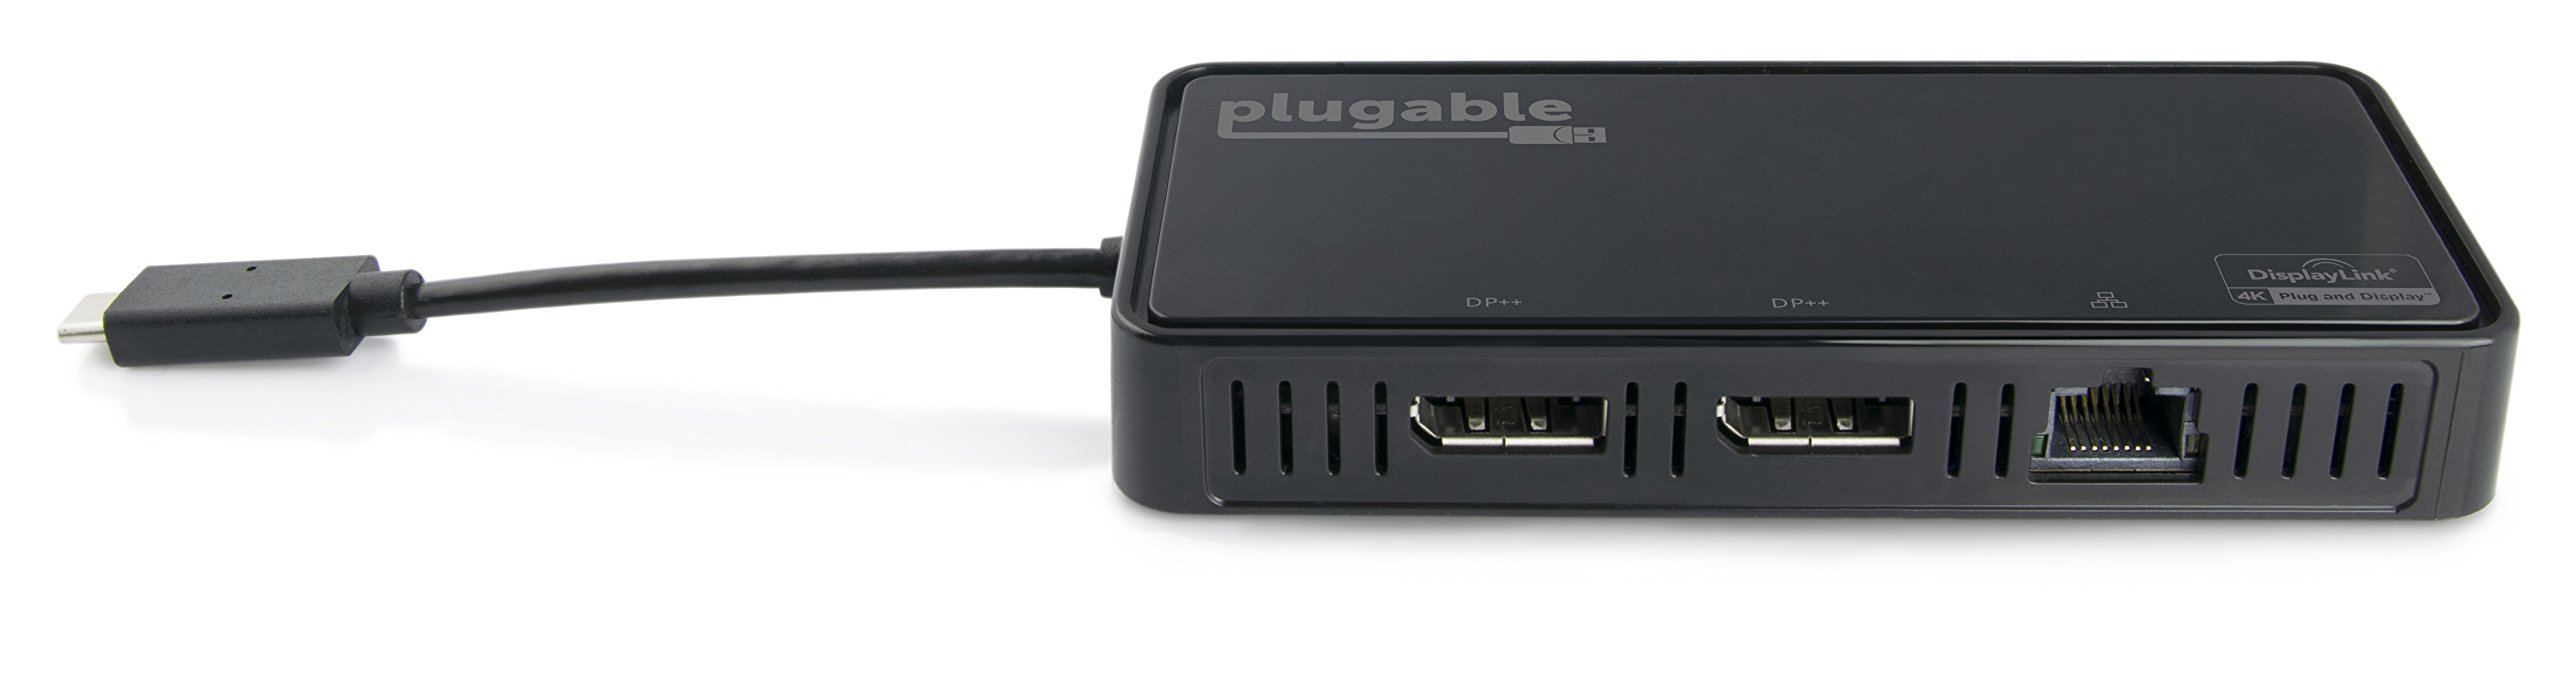 Plugable USB-C Dual 4K DisplayPort Adapter with Gigabit Ethernet for Windows (Supports Two DisplayPort Displays up to 3840x2160@60Hz, Thunderbolt 3 Port Compatible, Windows 10, 8.1 & 7)